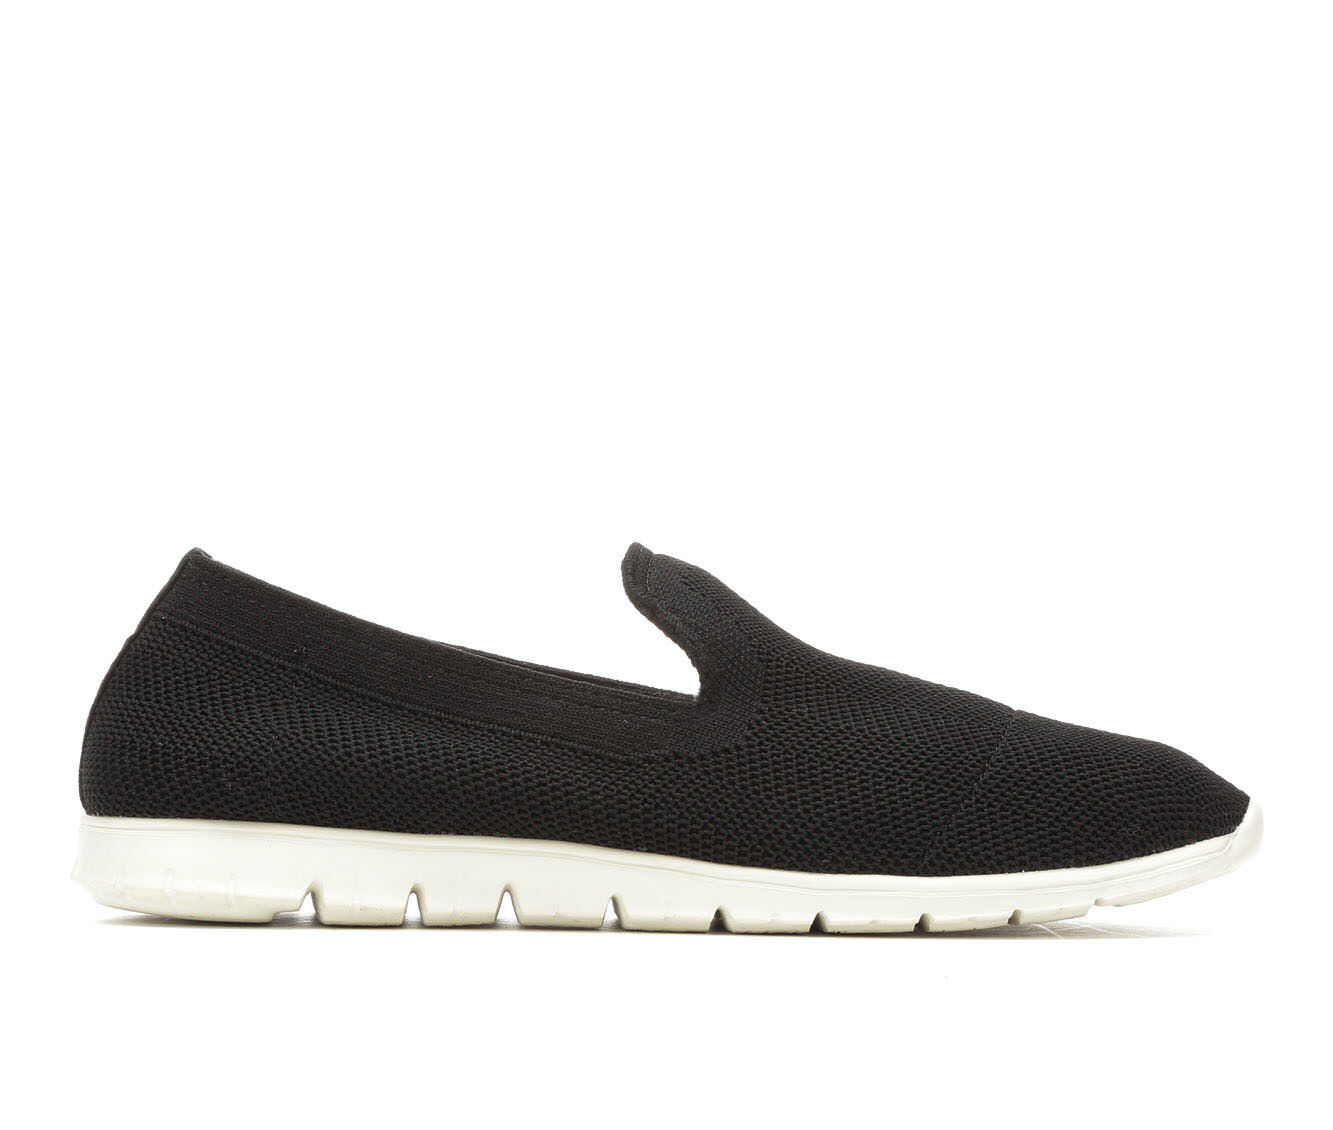 outlet sneakernews Women's Jellypop Confettis Slip-On Shoes outlet the cheapest factory outlet online 3s8hZ